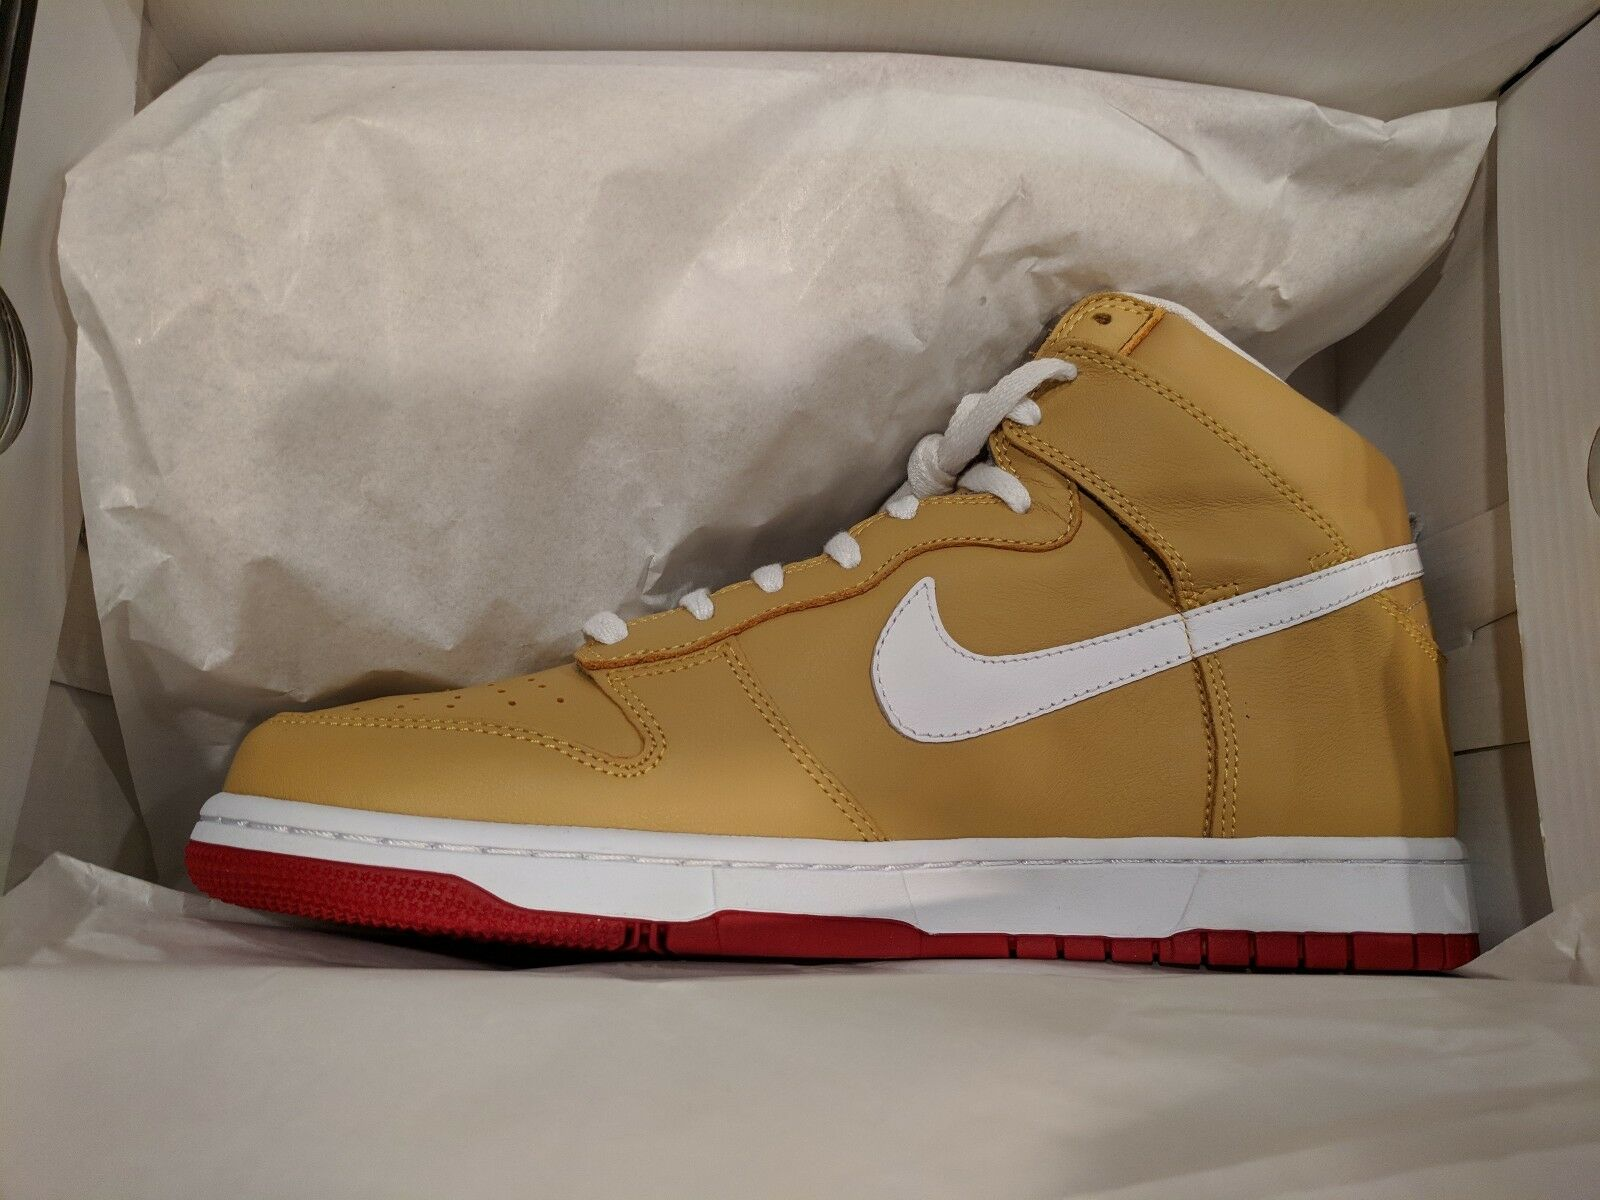 NIKE Sneakers Authentic Gold Tan 49ers custom NEVER WORN-IN BOX